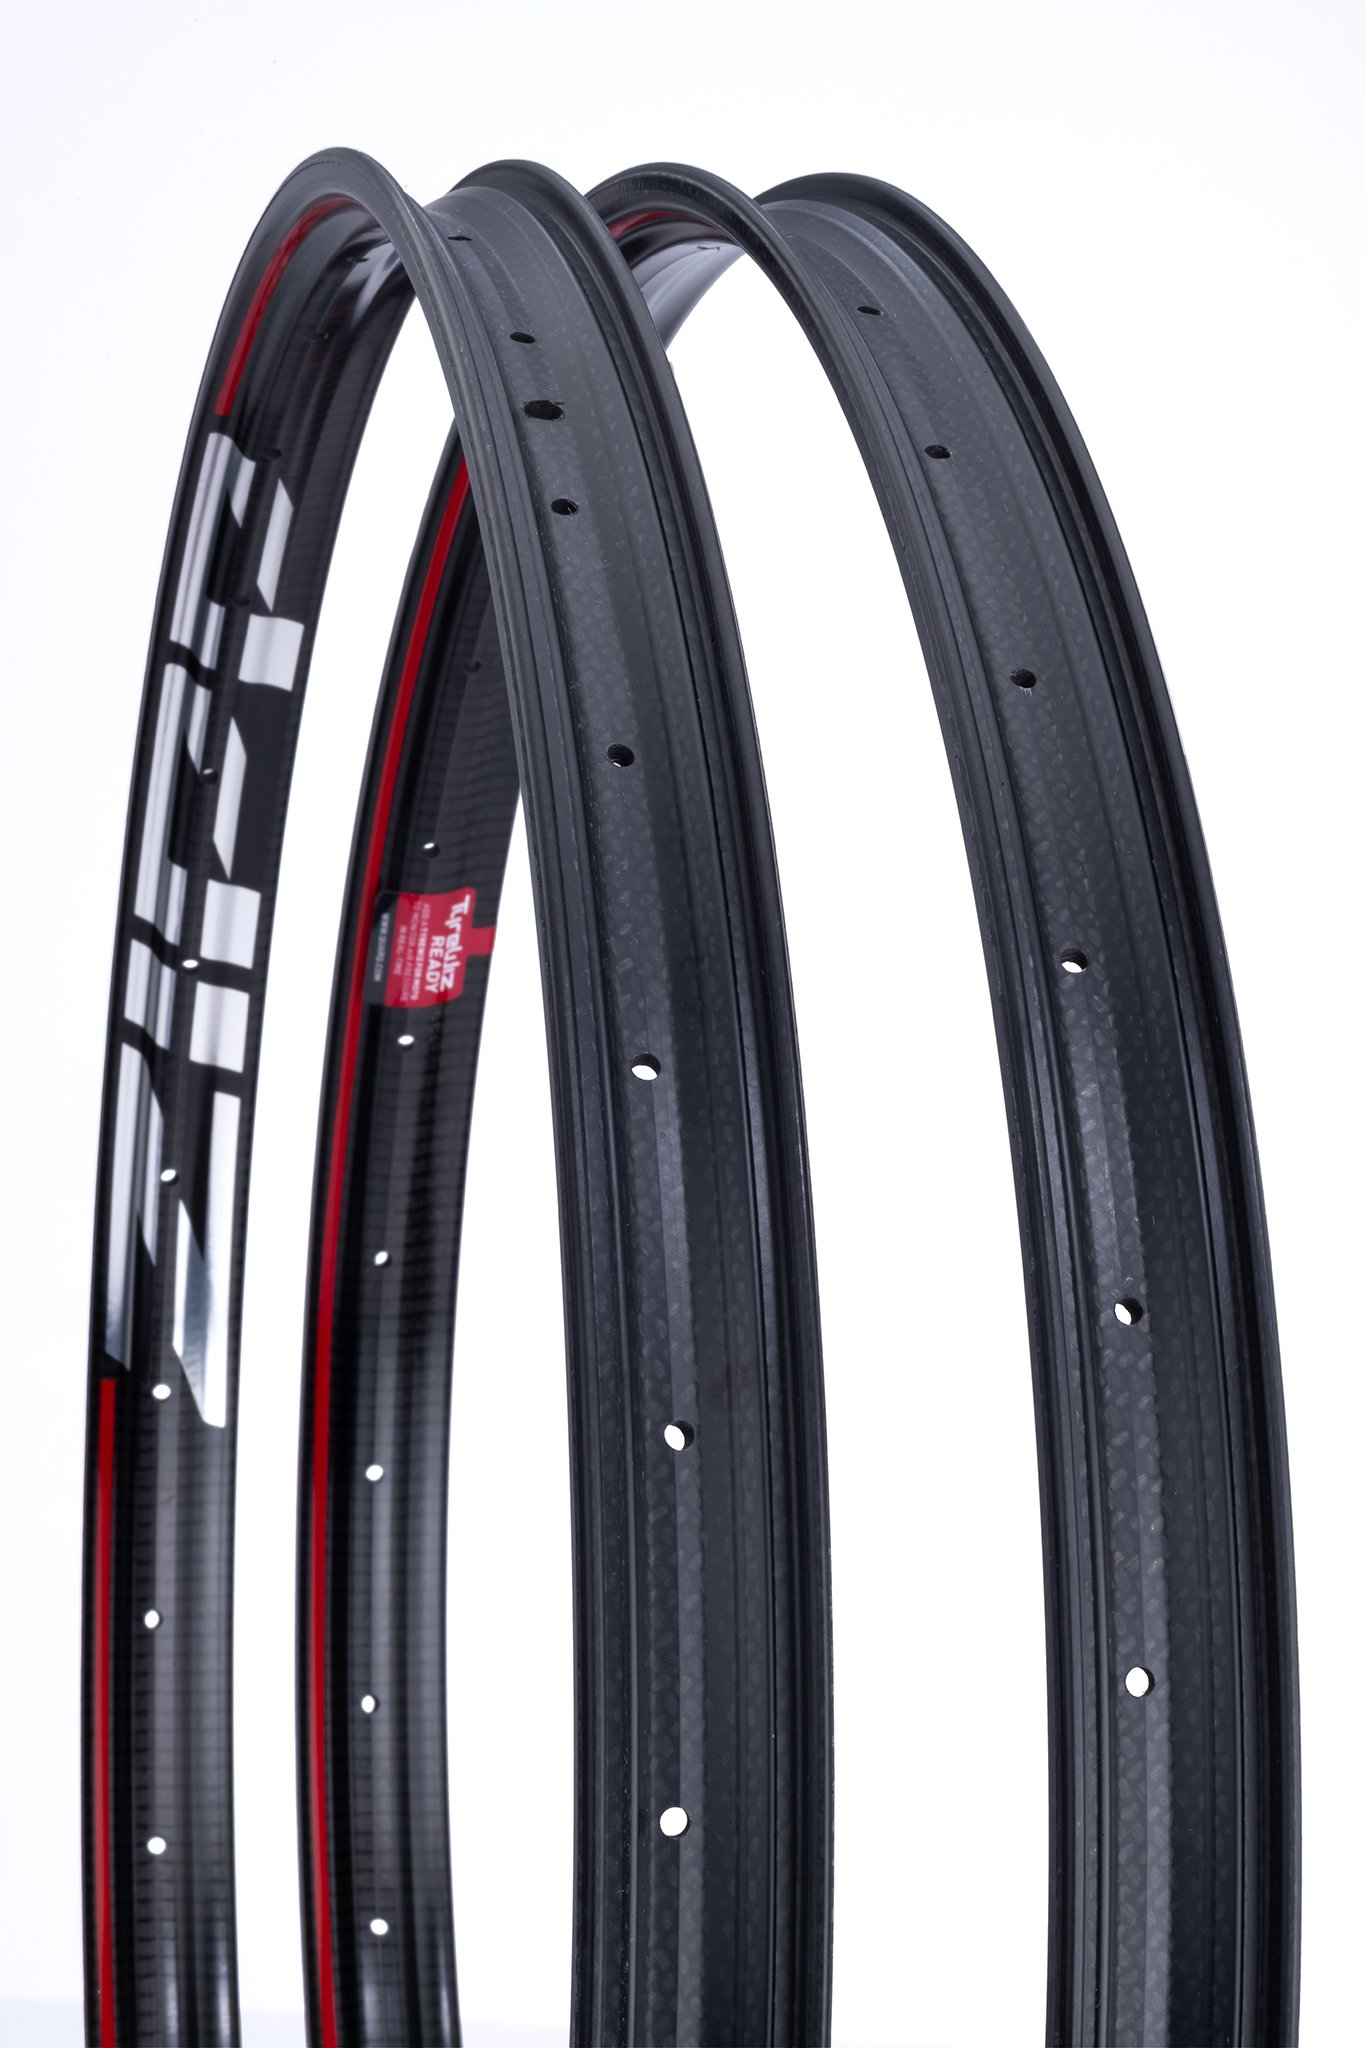 RM_3ZERO_MOTO_TL_DB_27.5_Rim_silverslate_red_pair_hero1.jpg